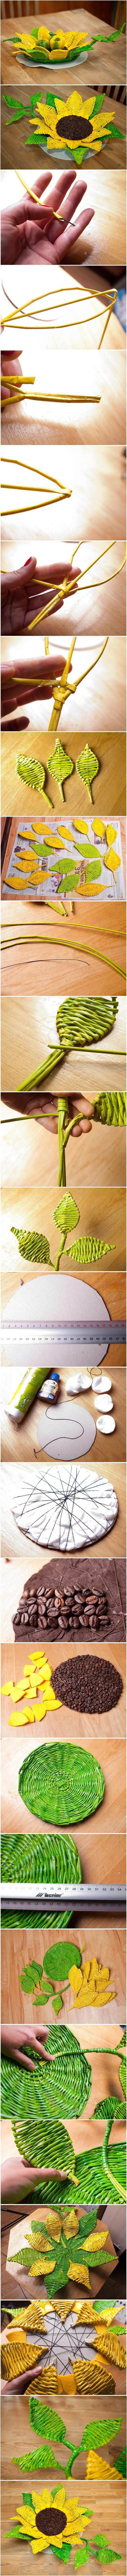 DIY Paper Woven Sunflower Tray | iCreativeIdeas.com Follow Us on Facebook --> https://www.facebook.com/icreativeideas